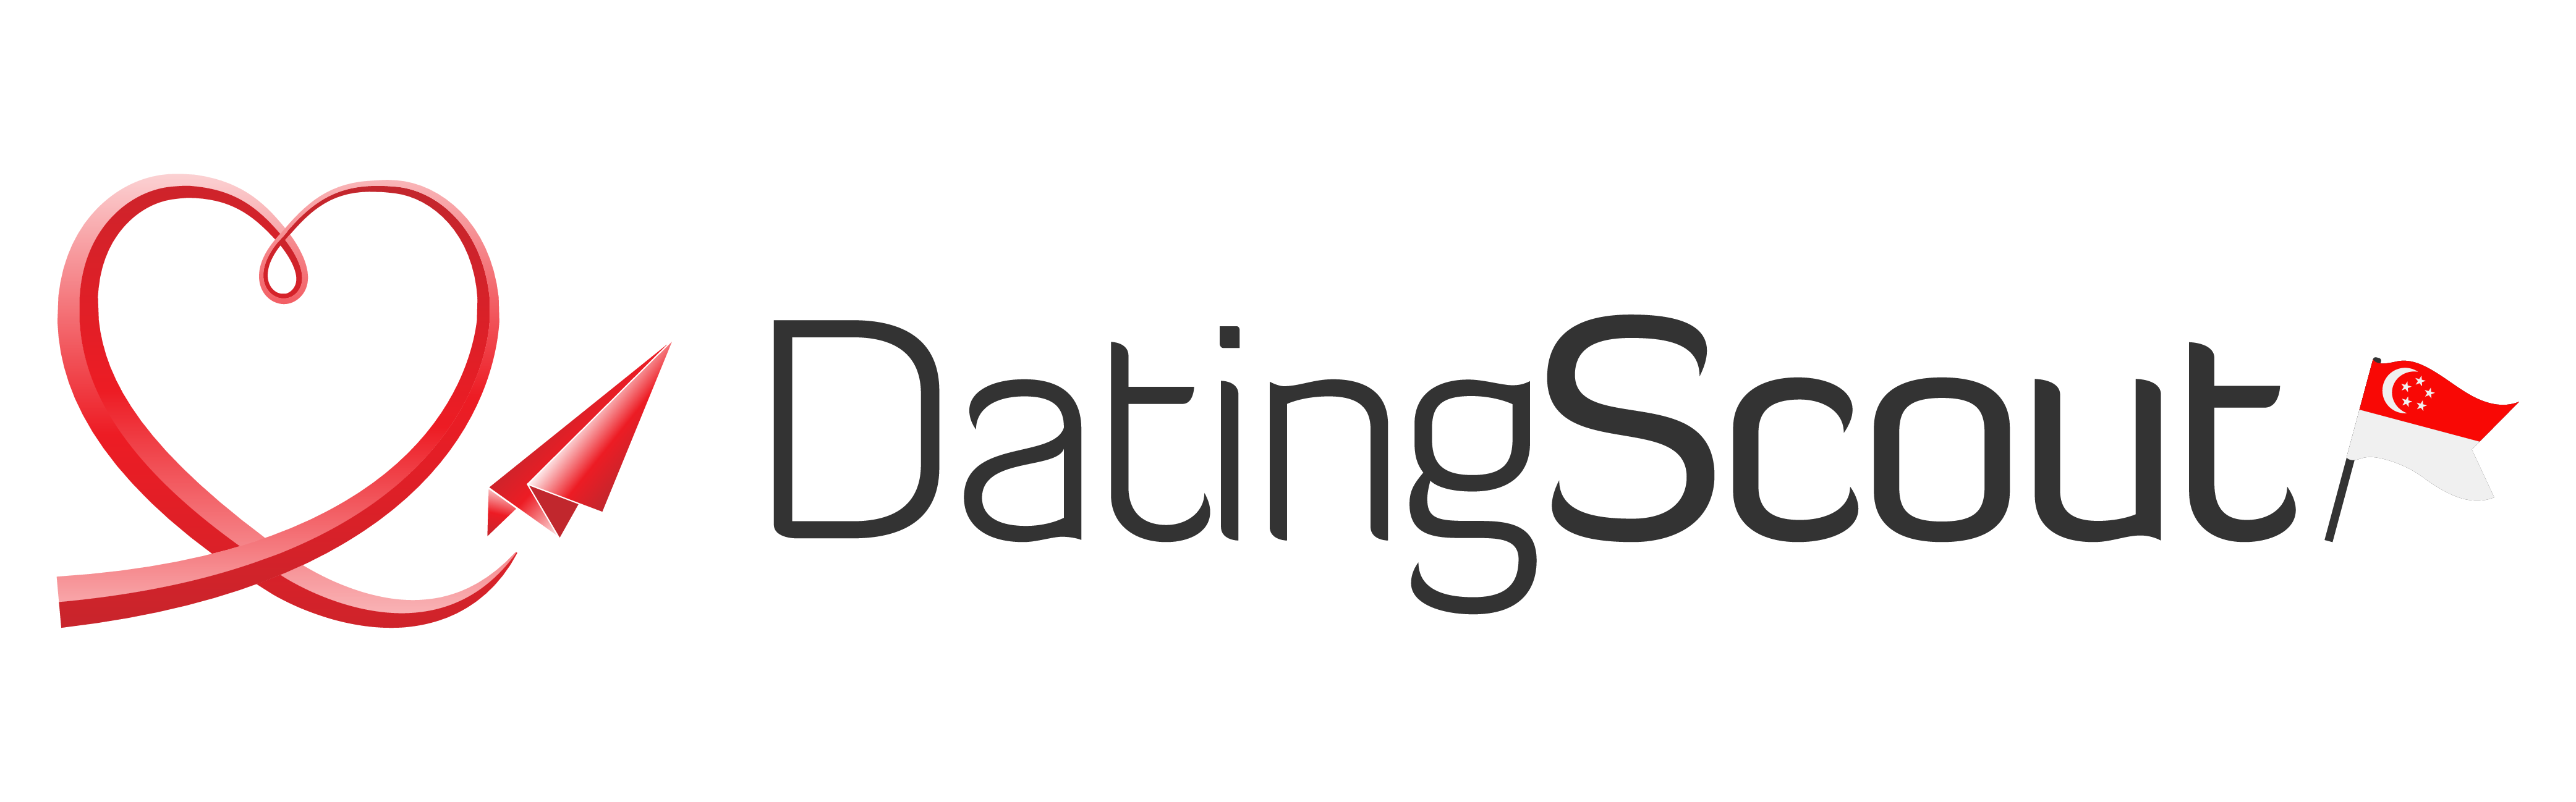 Datingscout.sg Logo